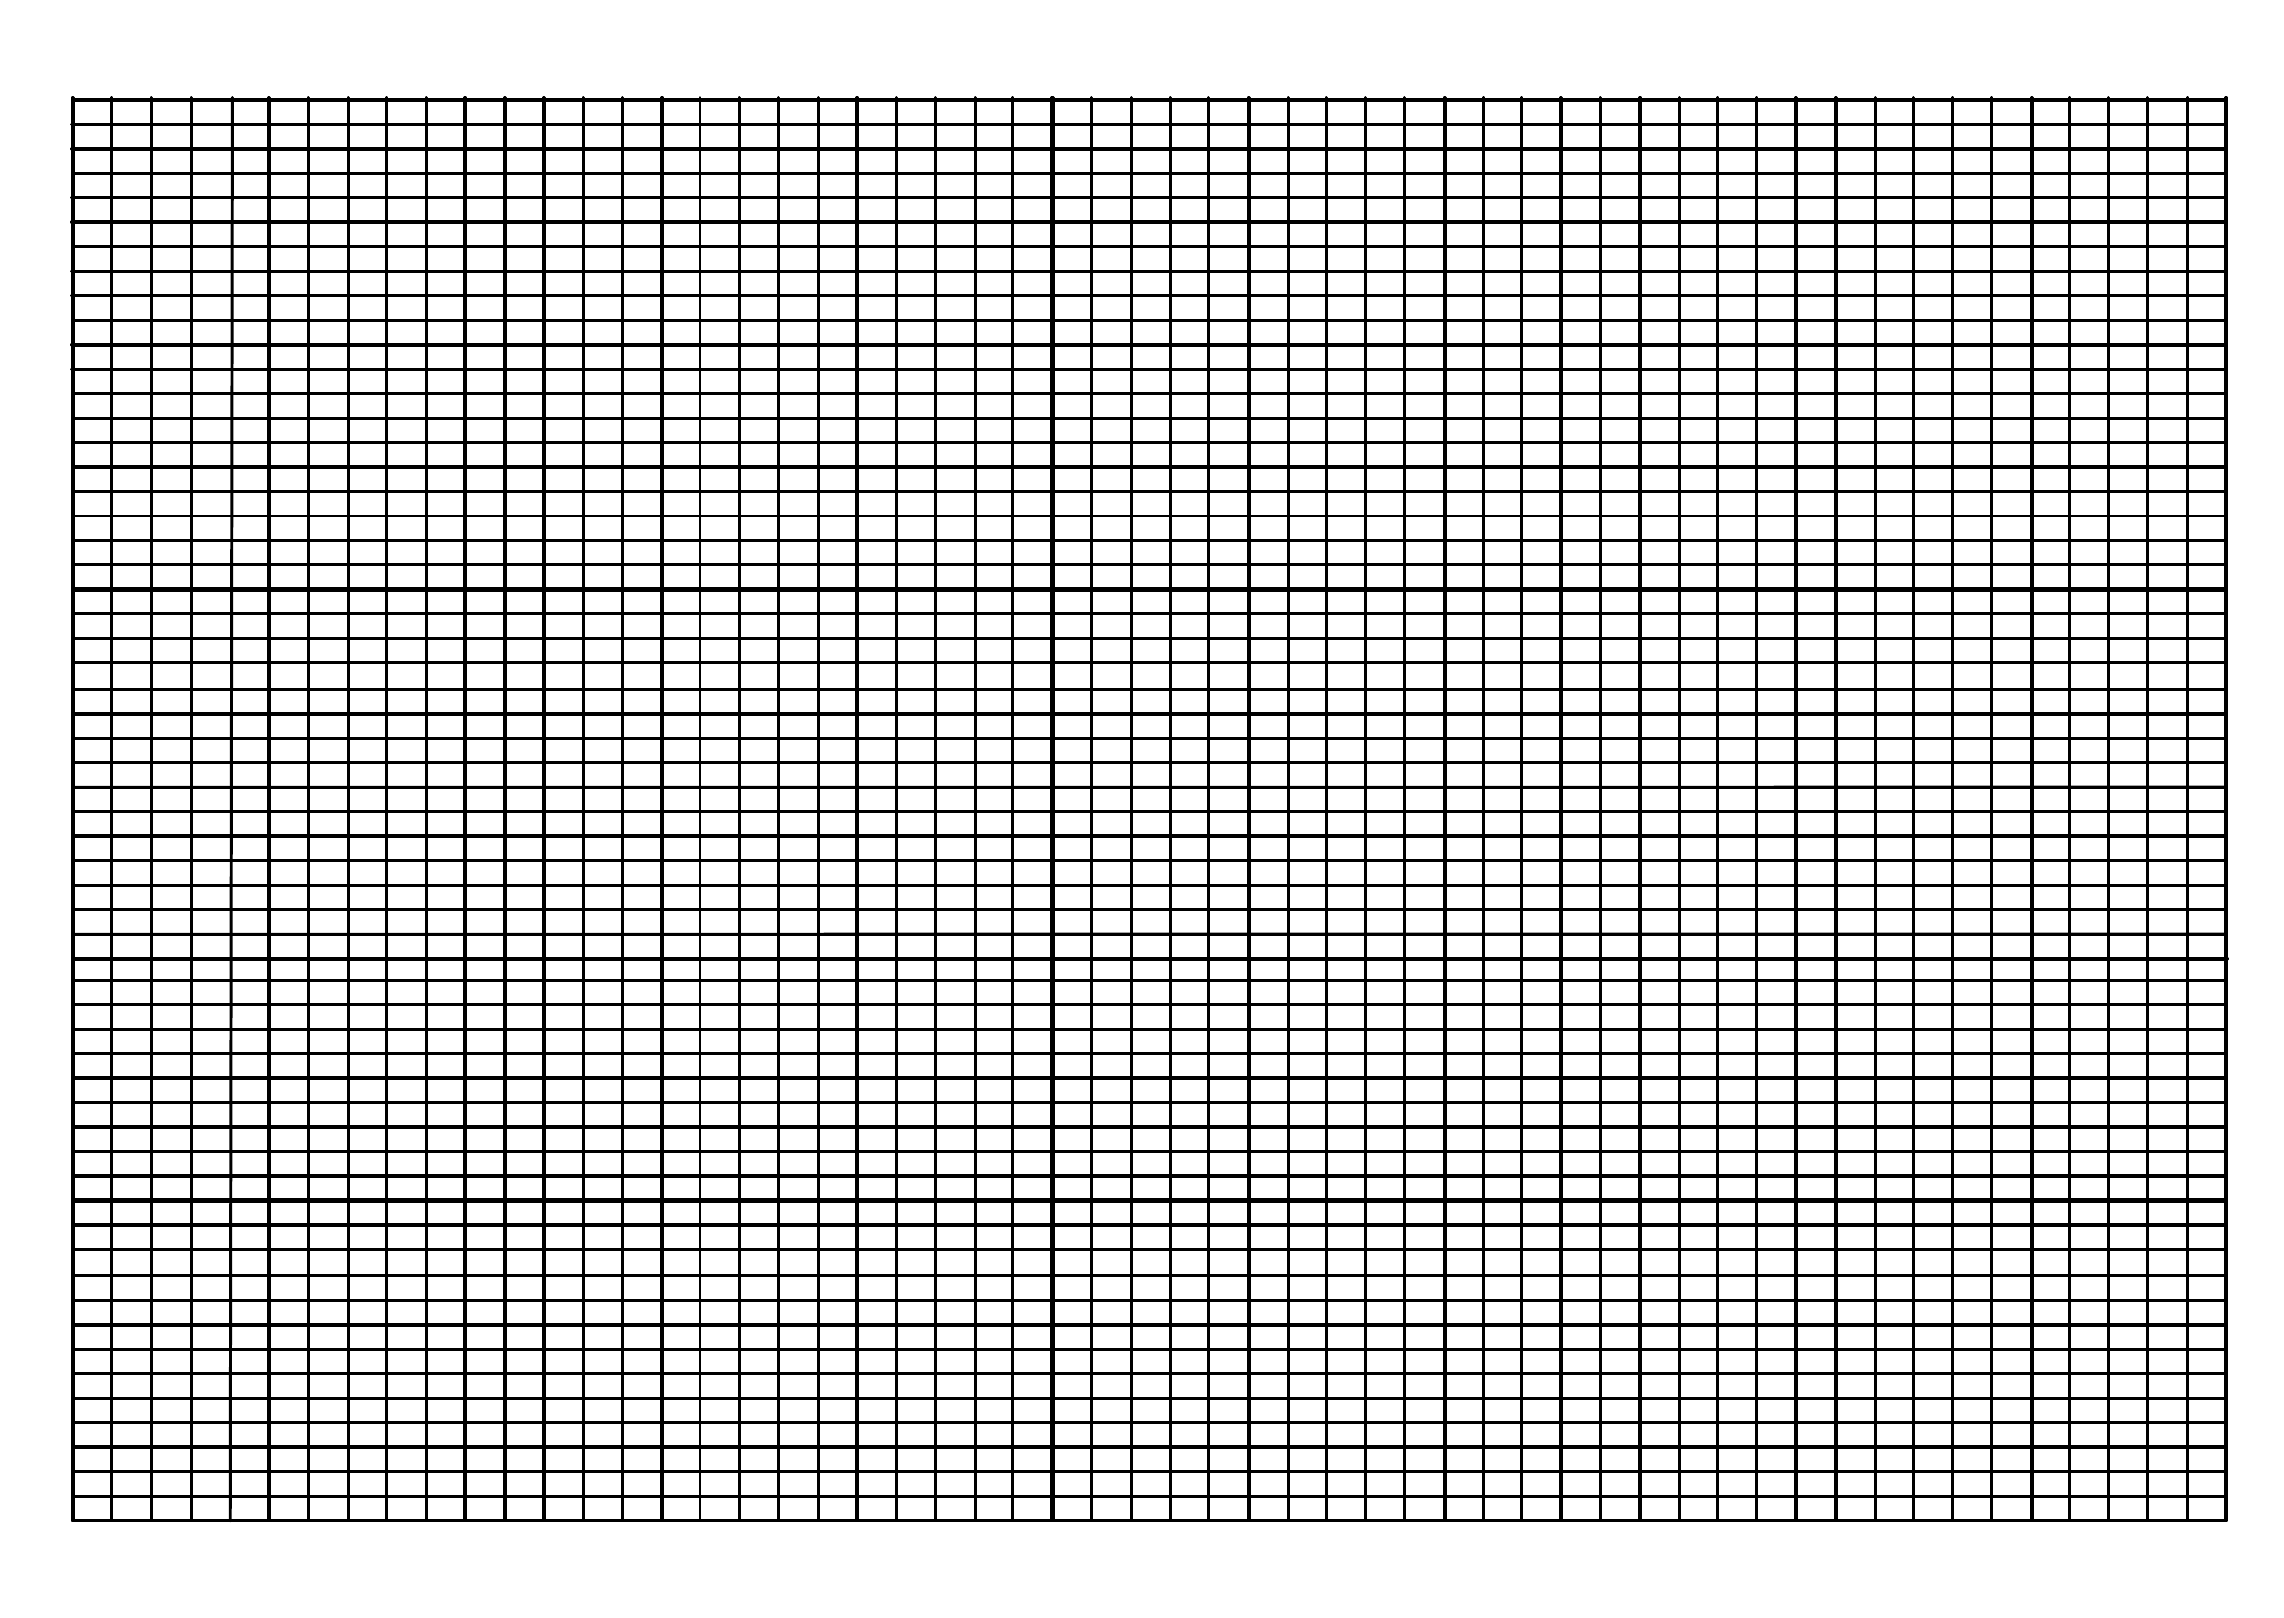 Knitting Chart Maker Free Download : A knitting graph paper free download